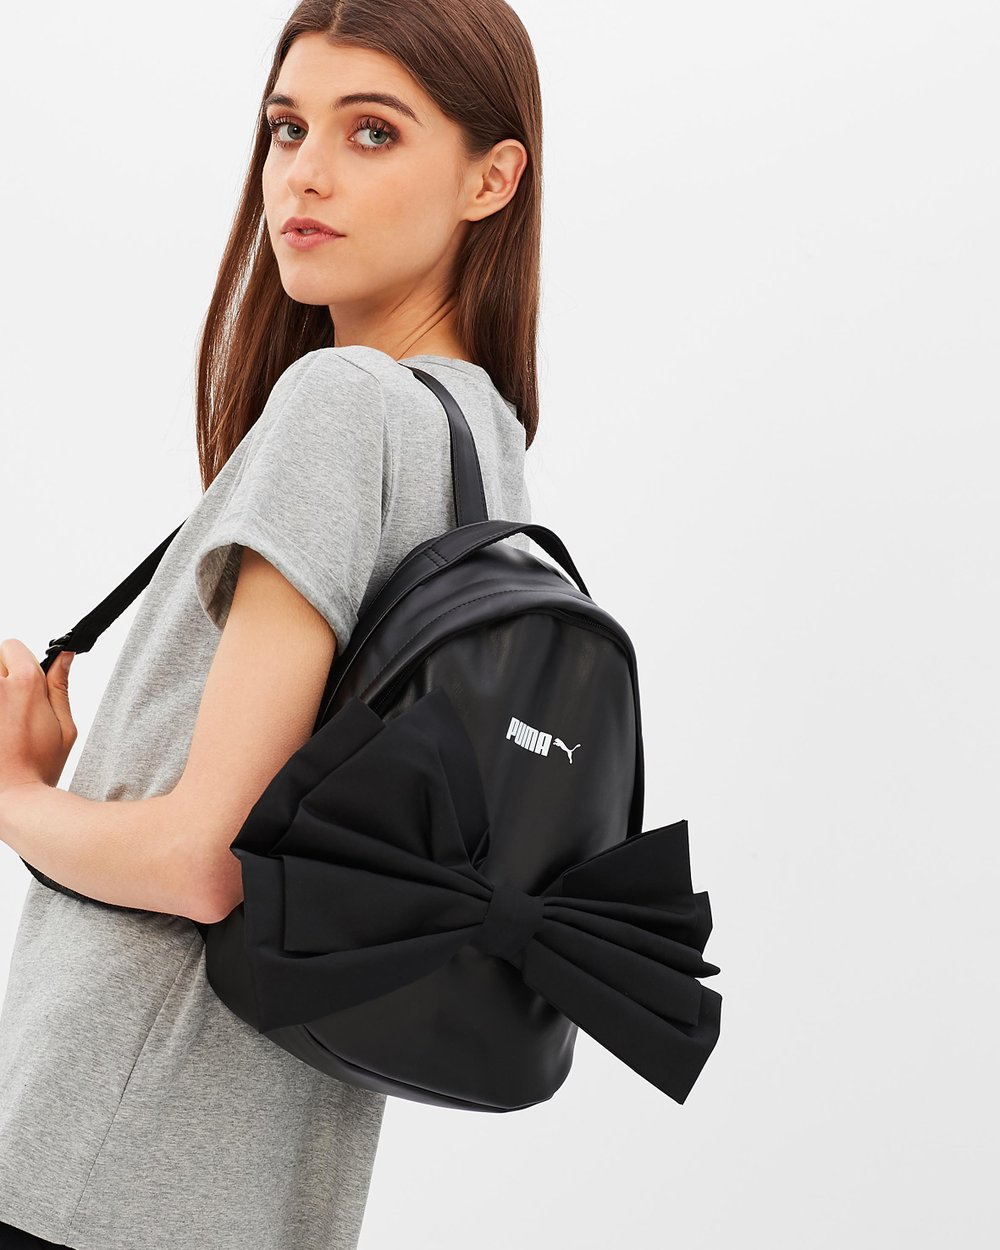 Prime Archive Bow Backpack by Puma Online  ad50627bae99a